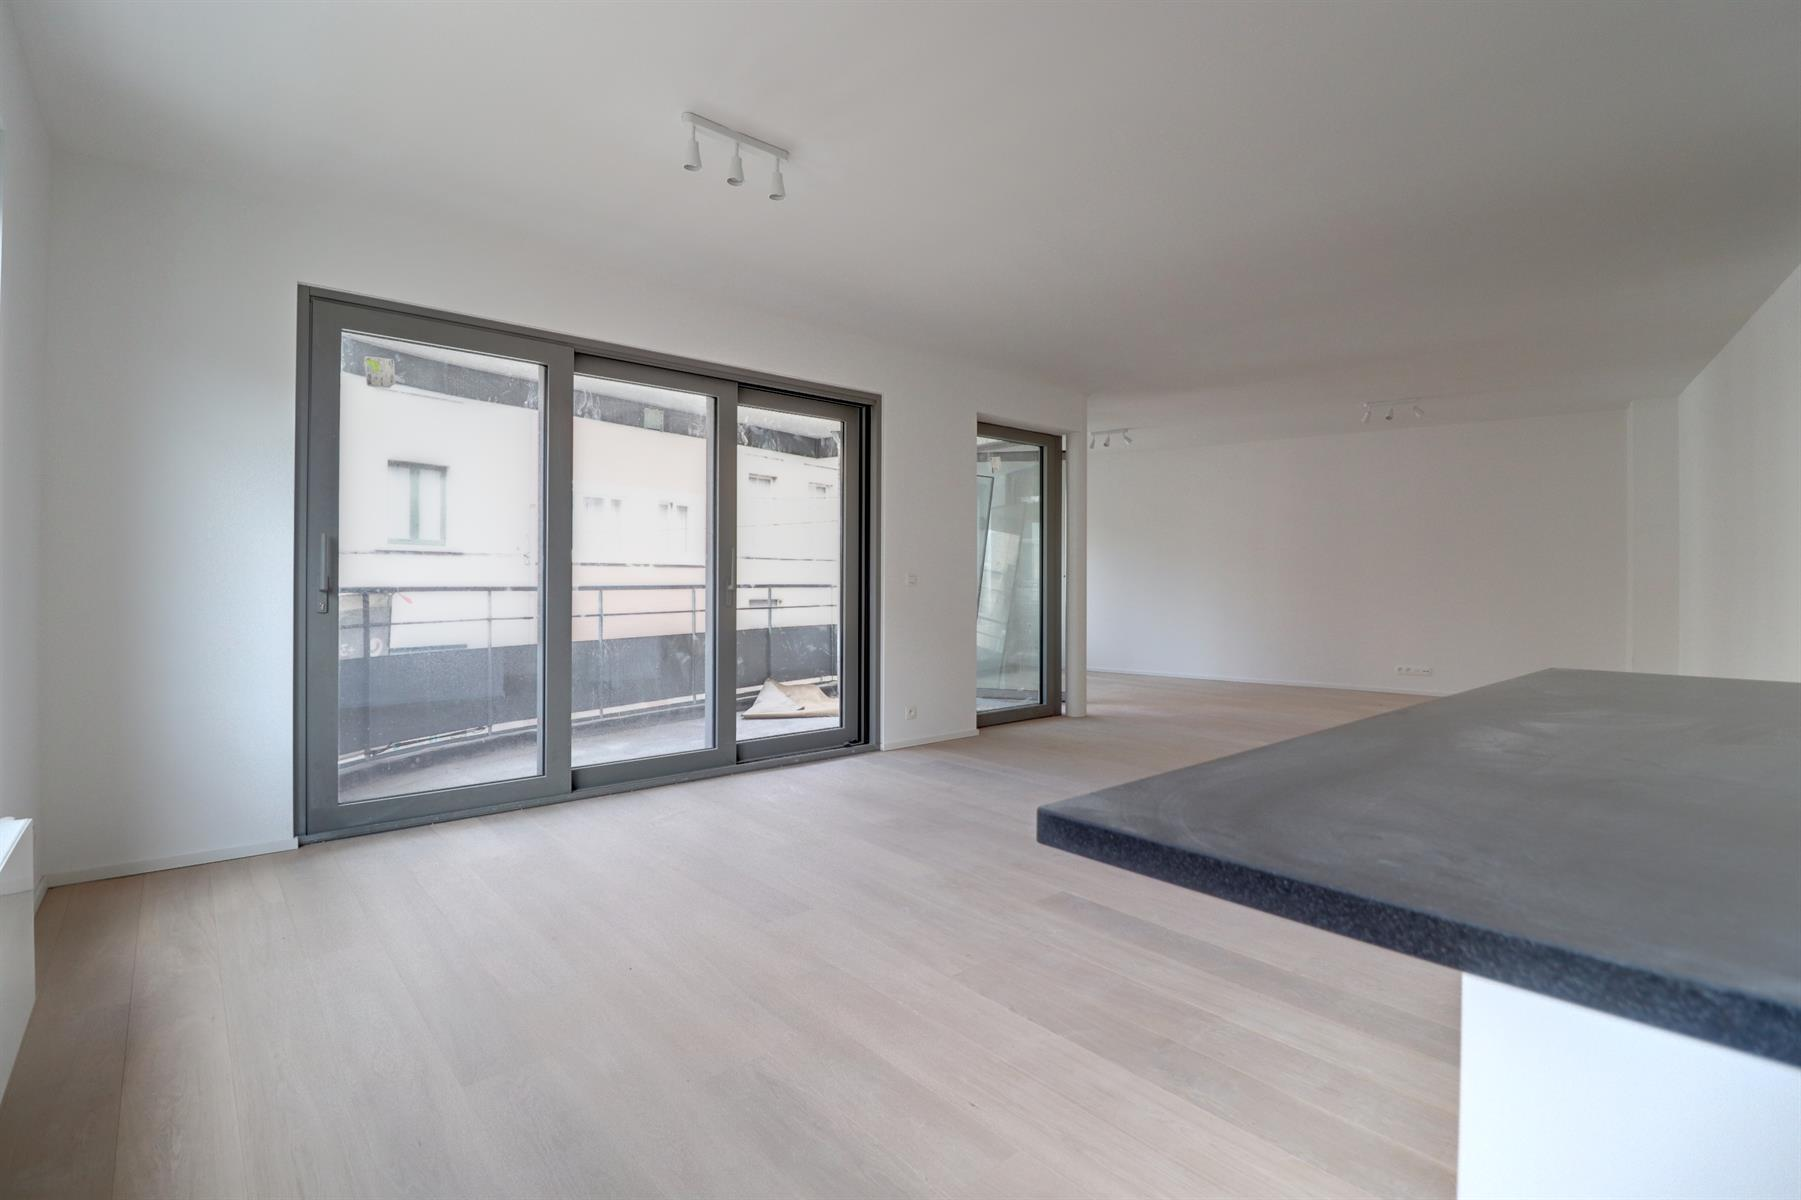 Appartement - Uccle - #4021558-15